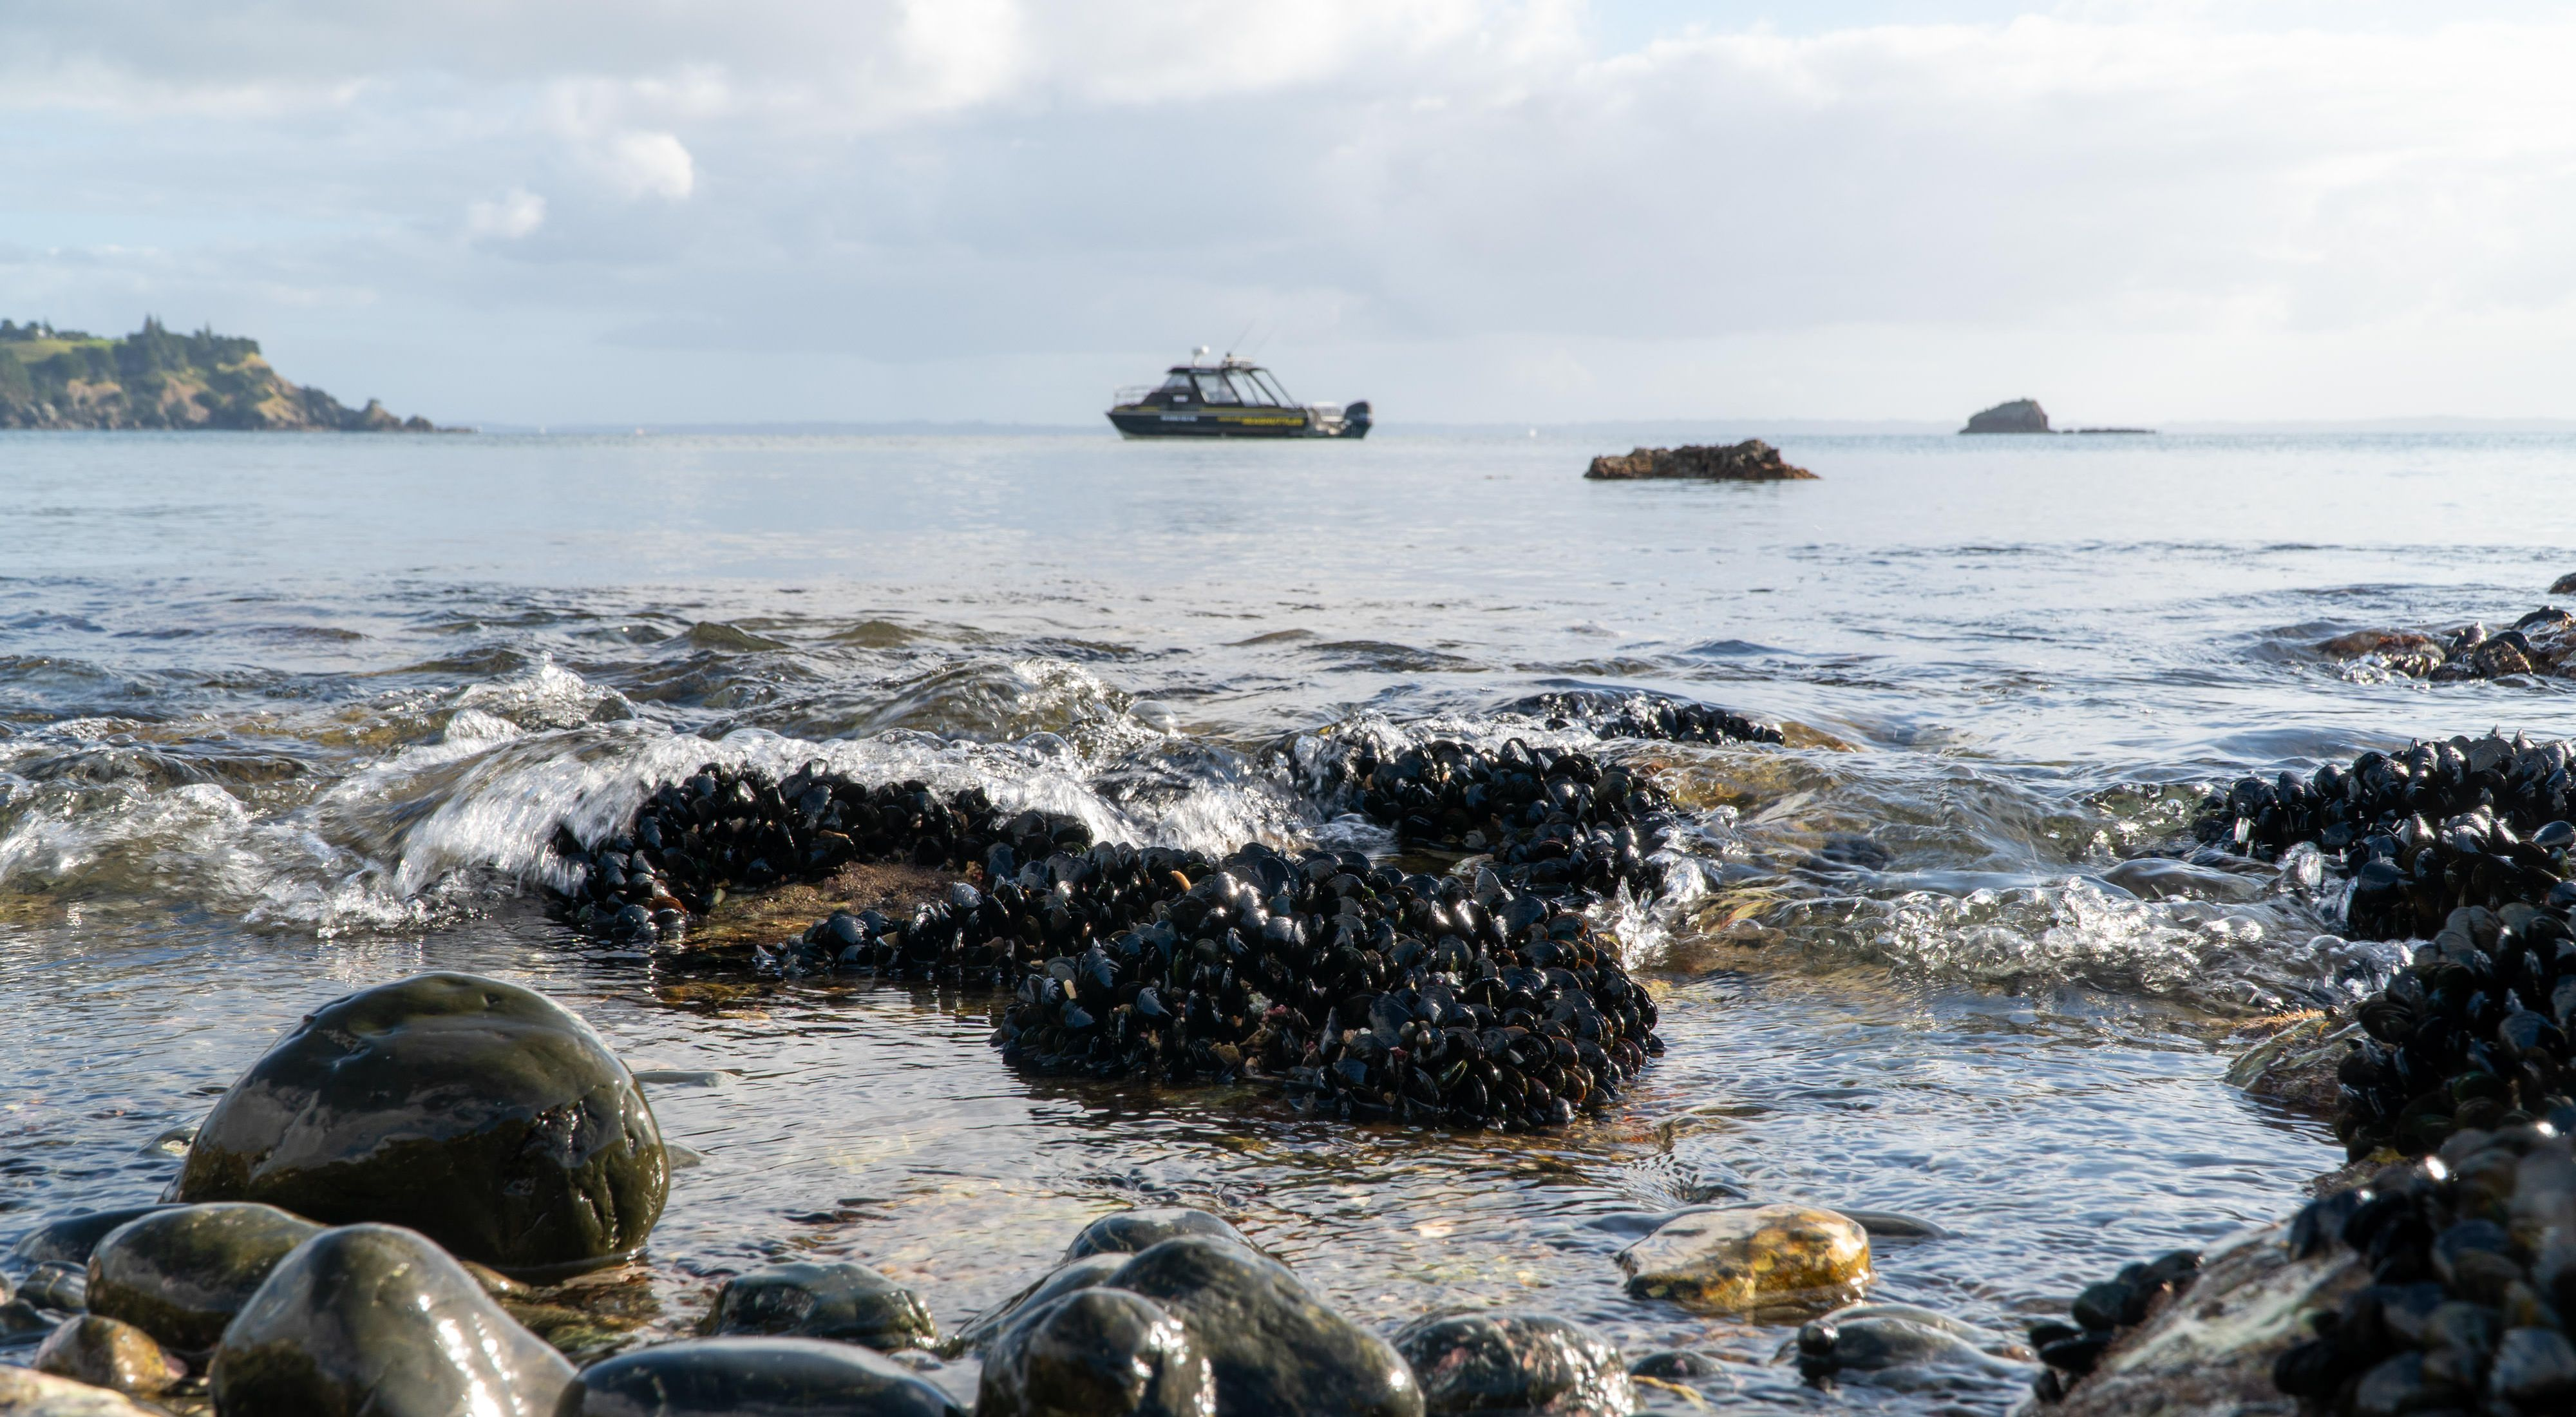 As the tide comes in, mussels escape from the oystercatchers for a time. Beyond the mussel beds our ride waits to collect us.